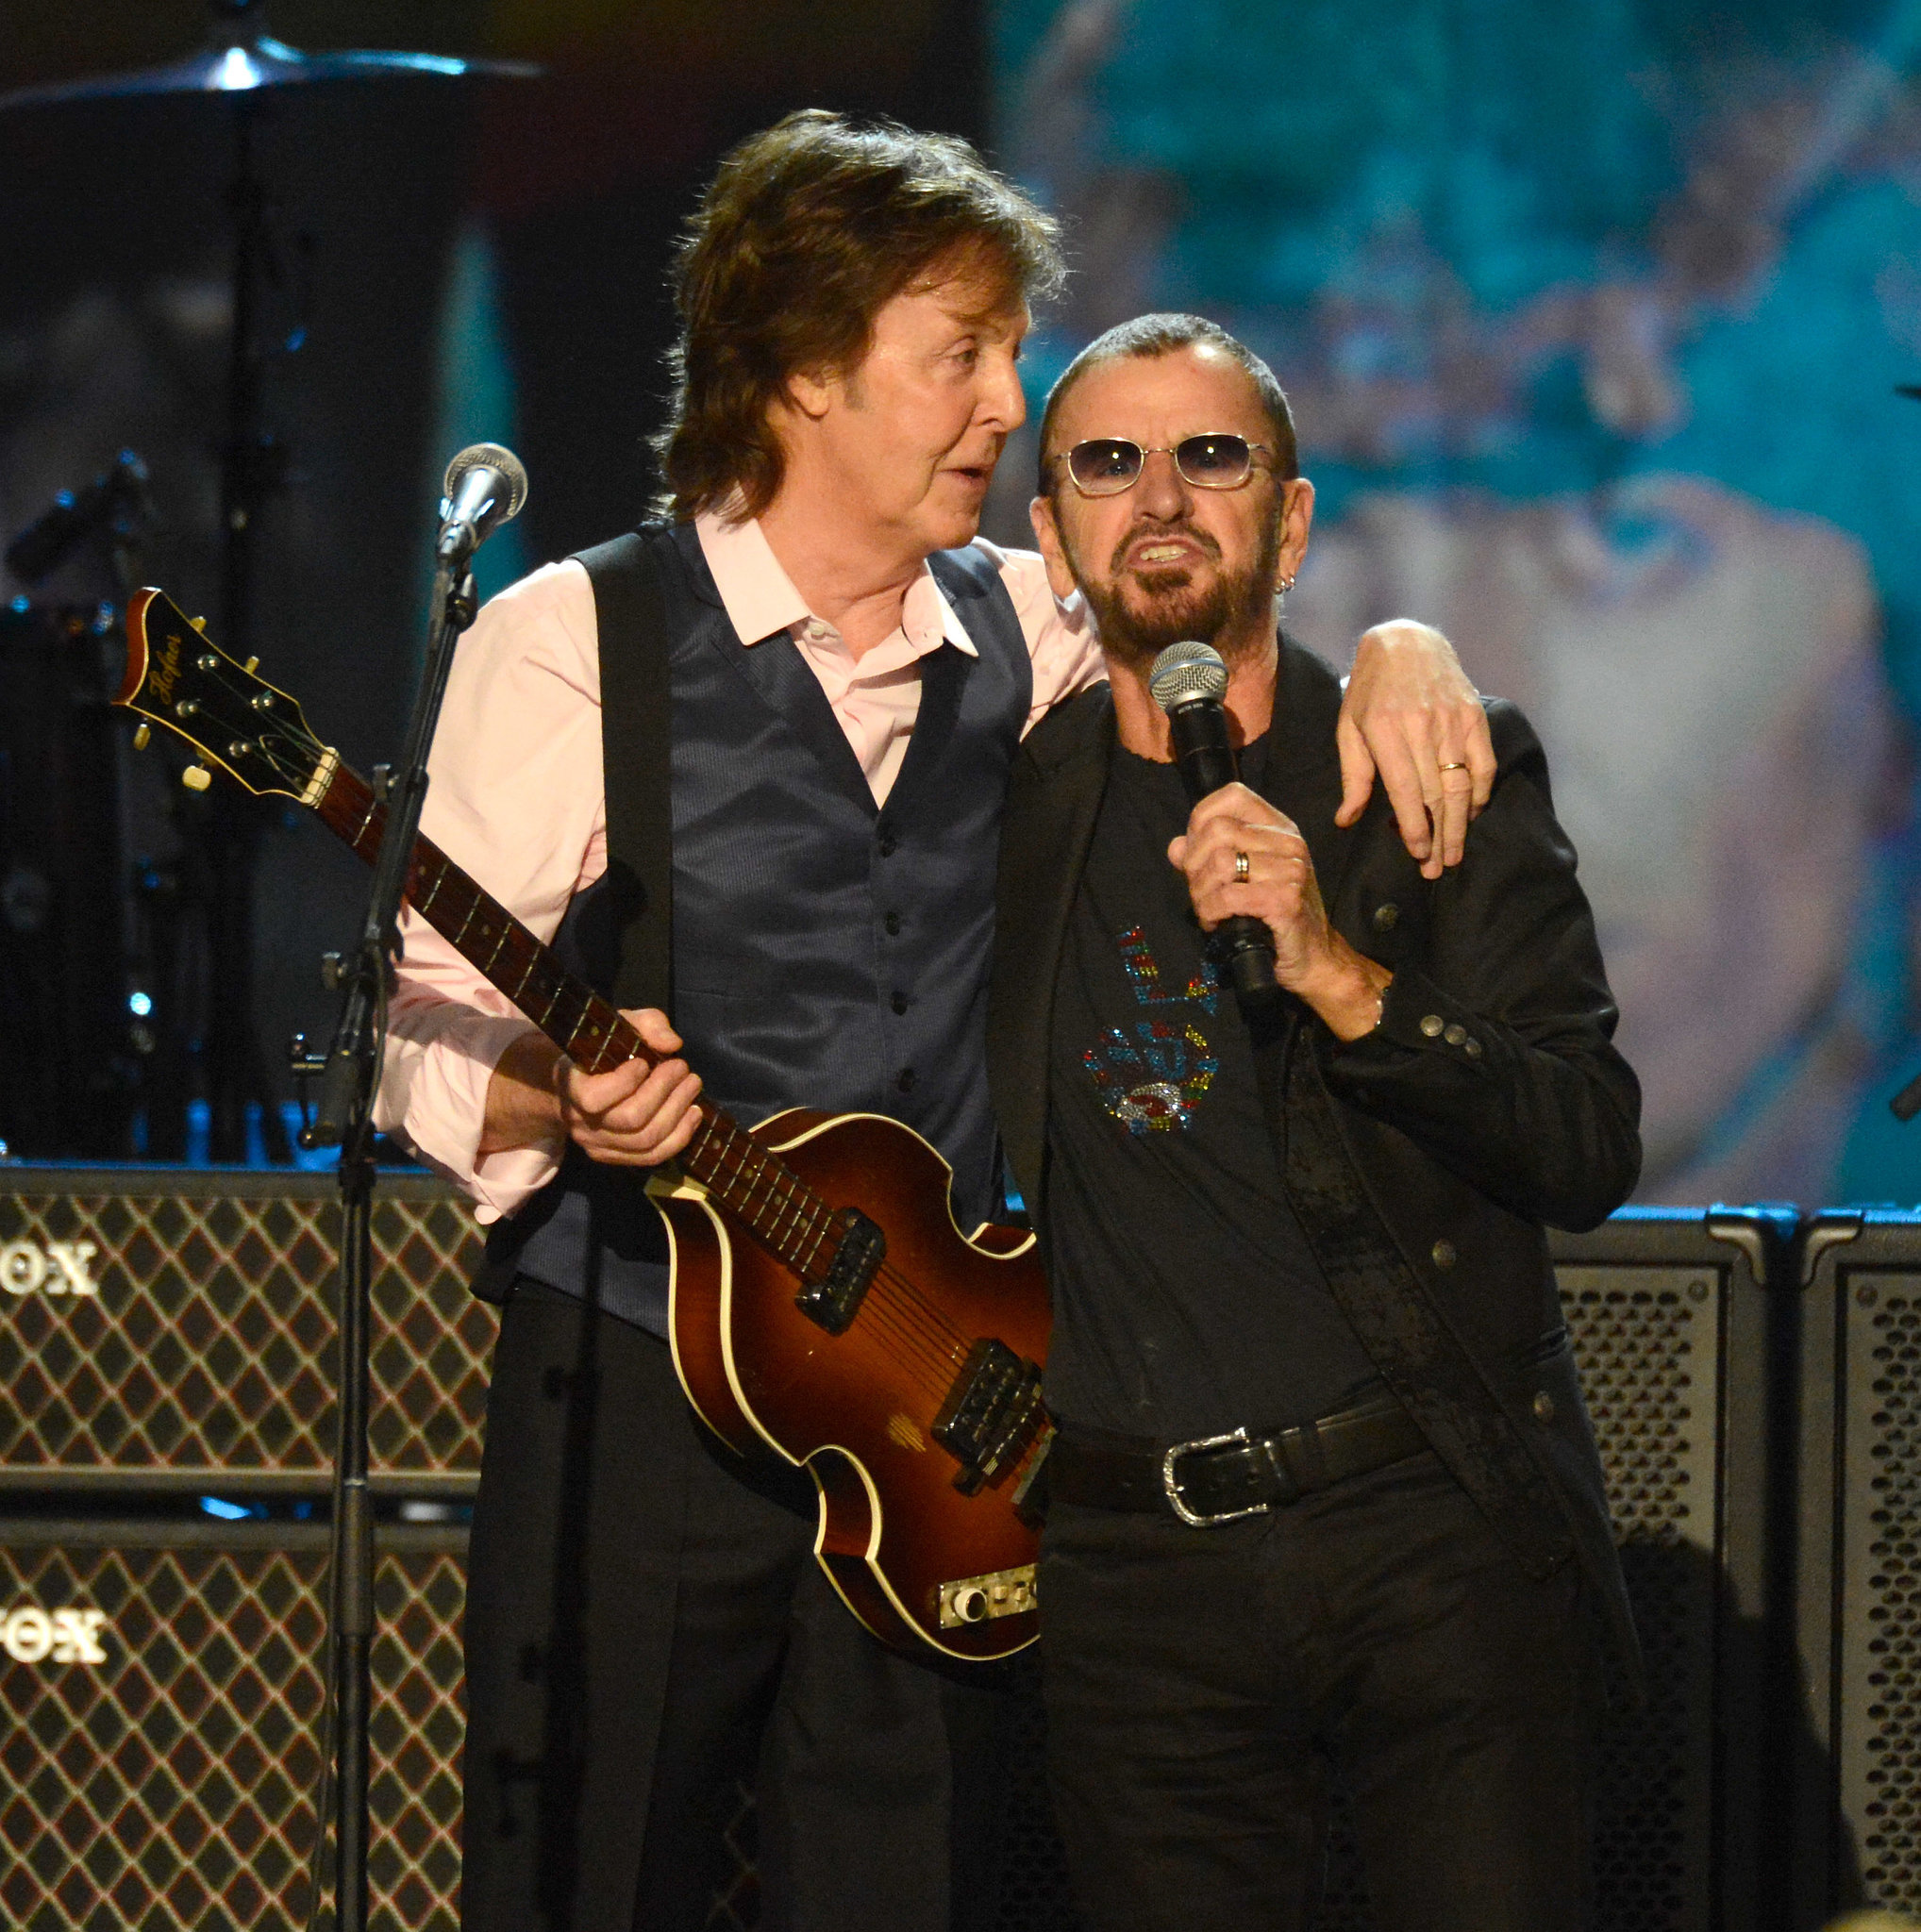 Paul McCartney and Ringo Starr reunited for a performance.